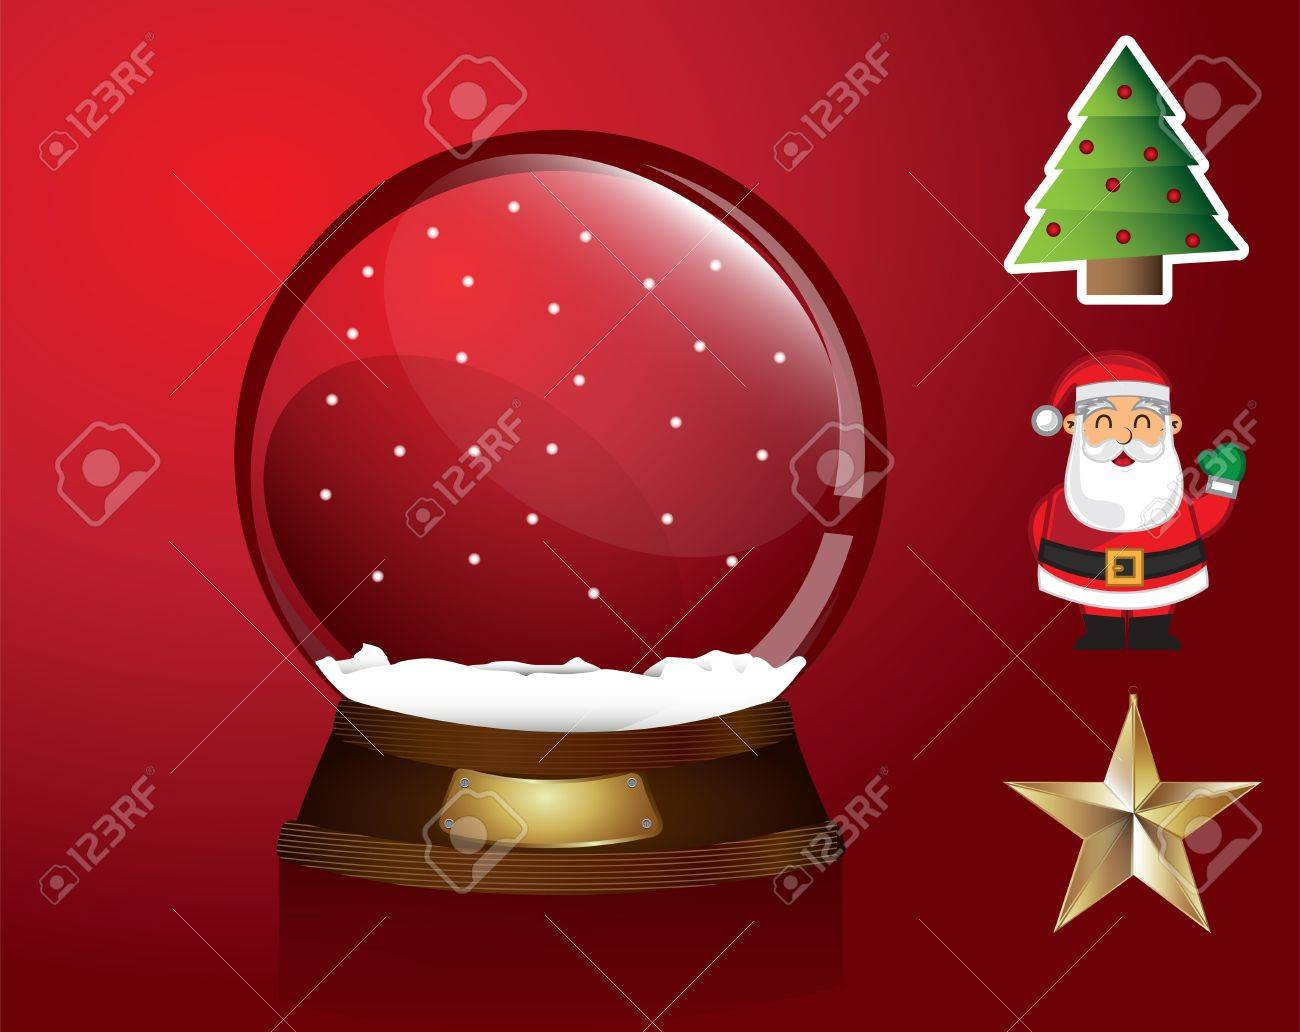 Christmas symbols around like a snowball tree, star, santa over red background Stock Vector - 15323395